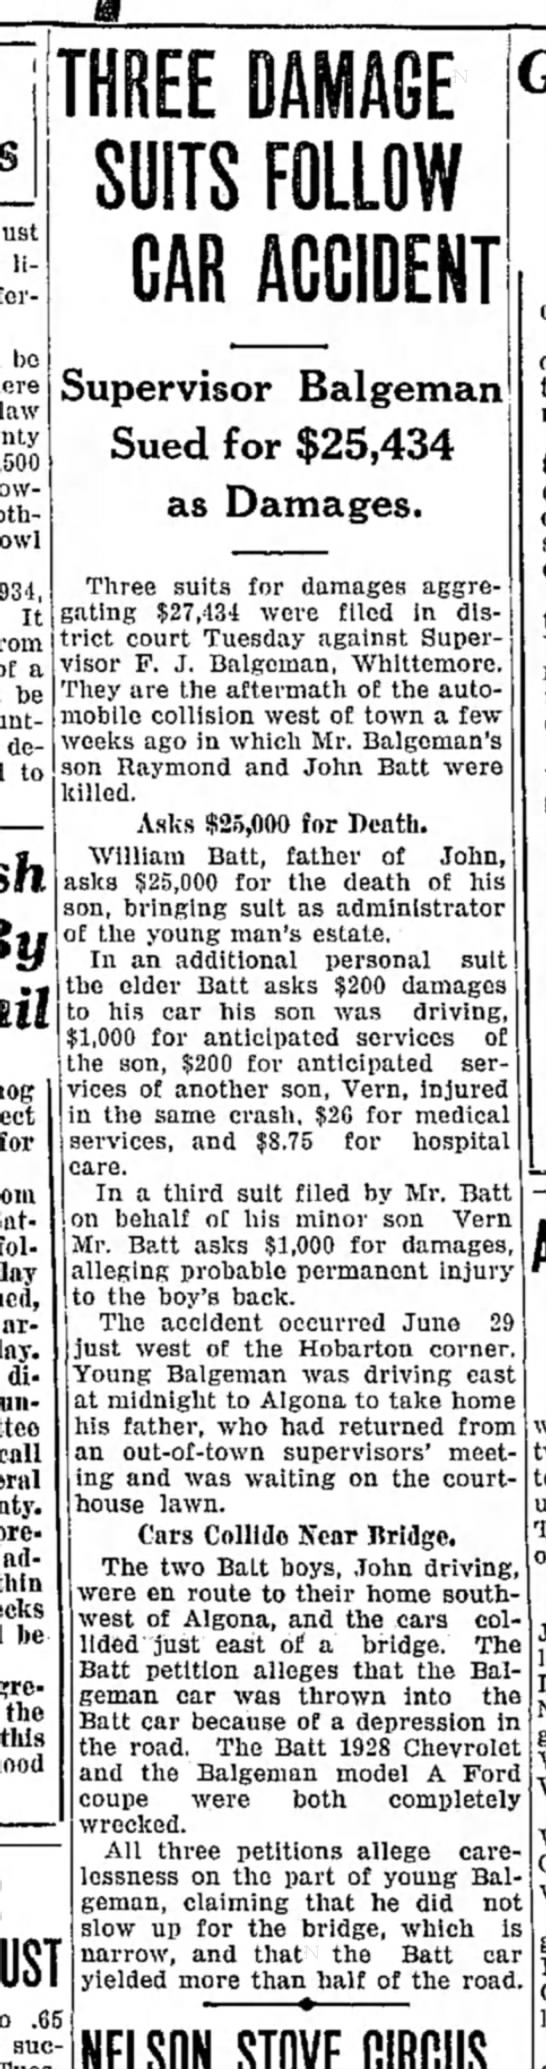 supervisor balgeman sued for damages in car accident - be oth- 1934, It from a be demand to for follow...